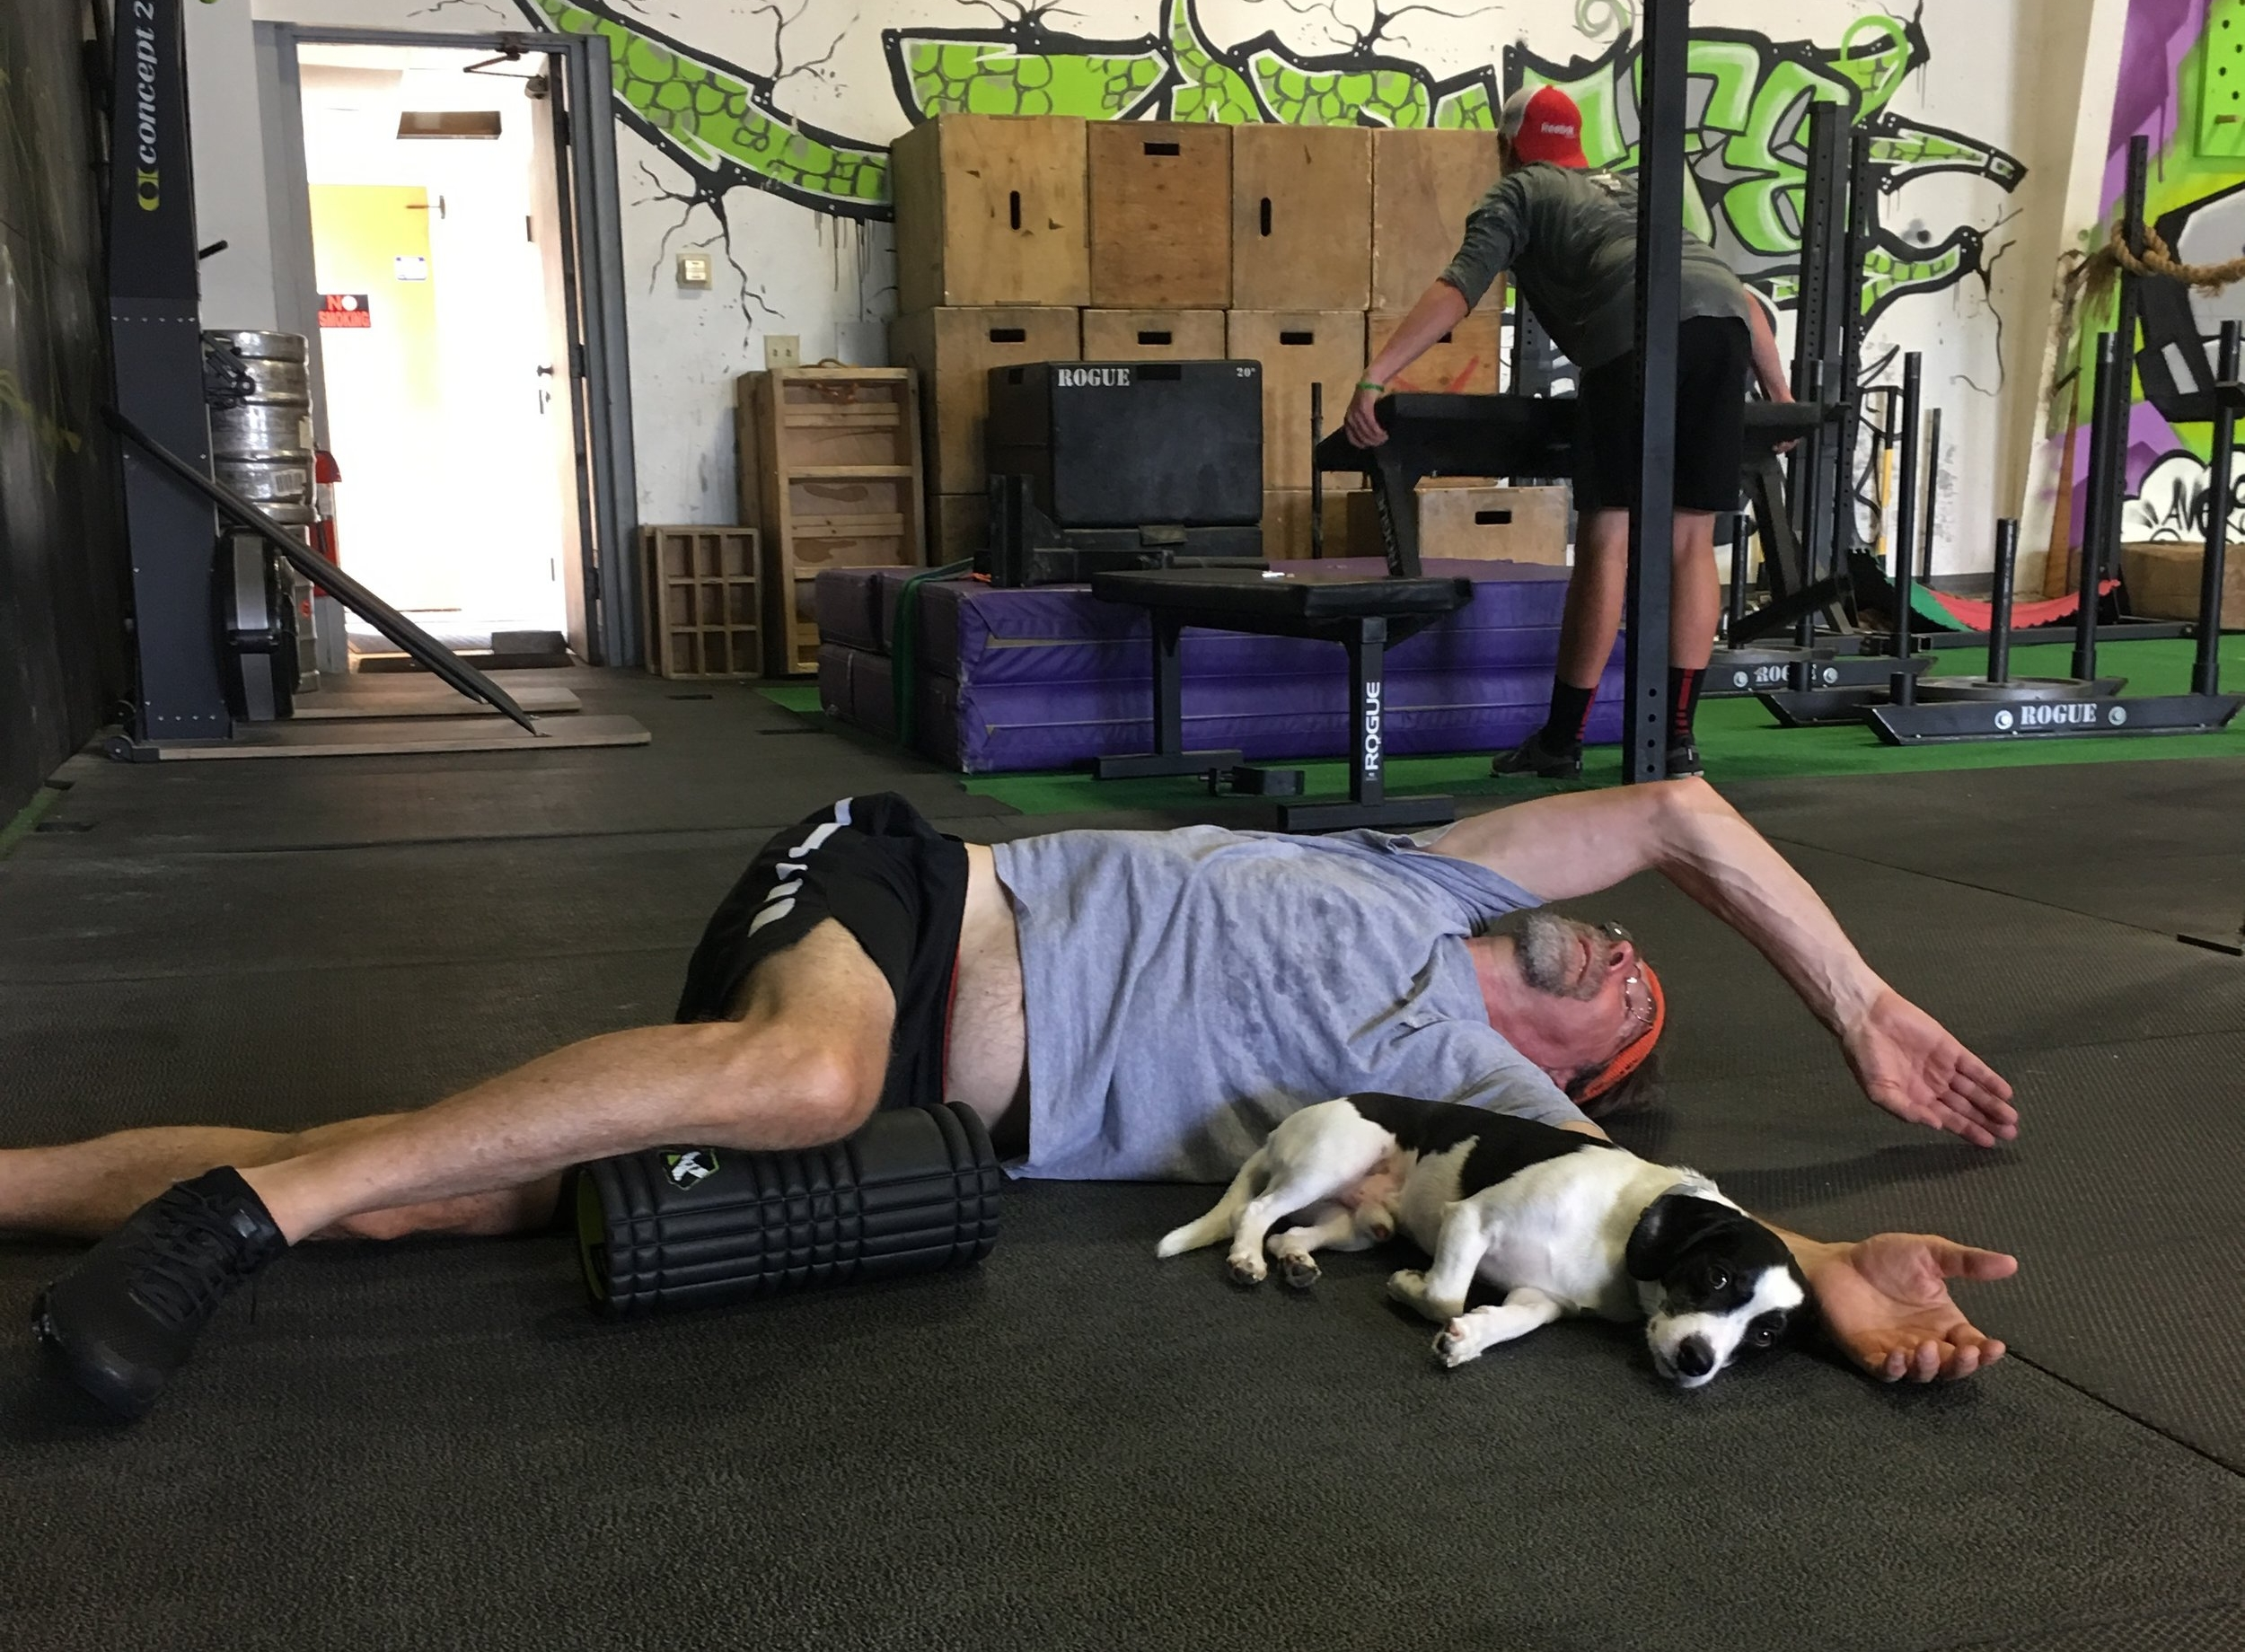 Snoopy providing protection and reassurance during a mobility torture session :)